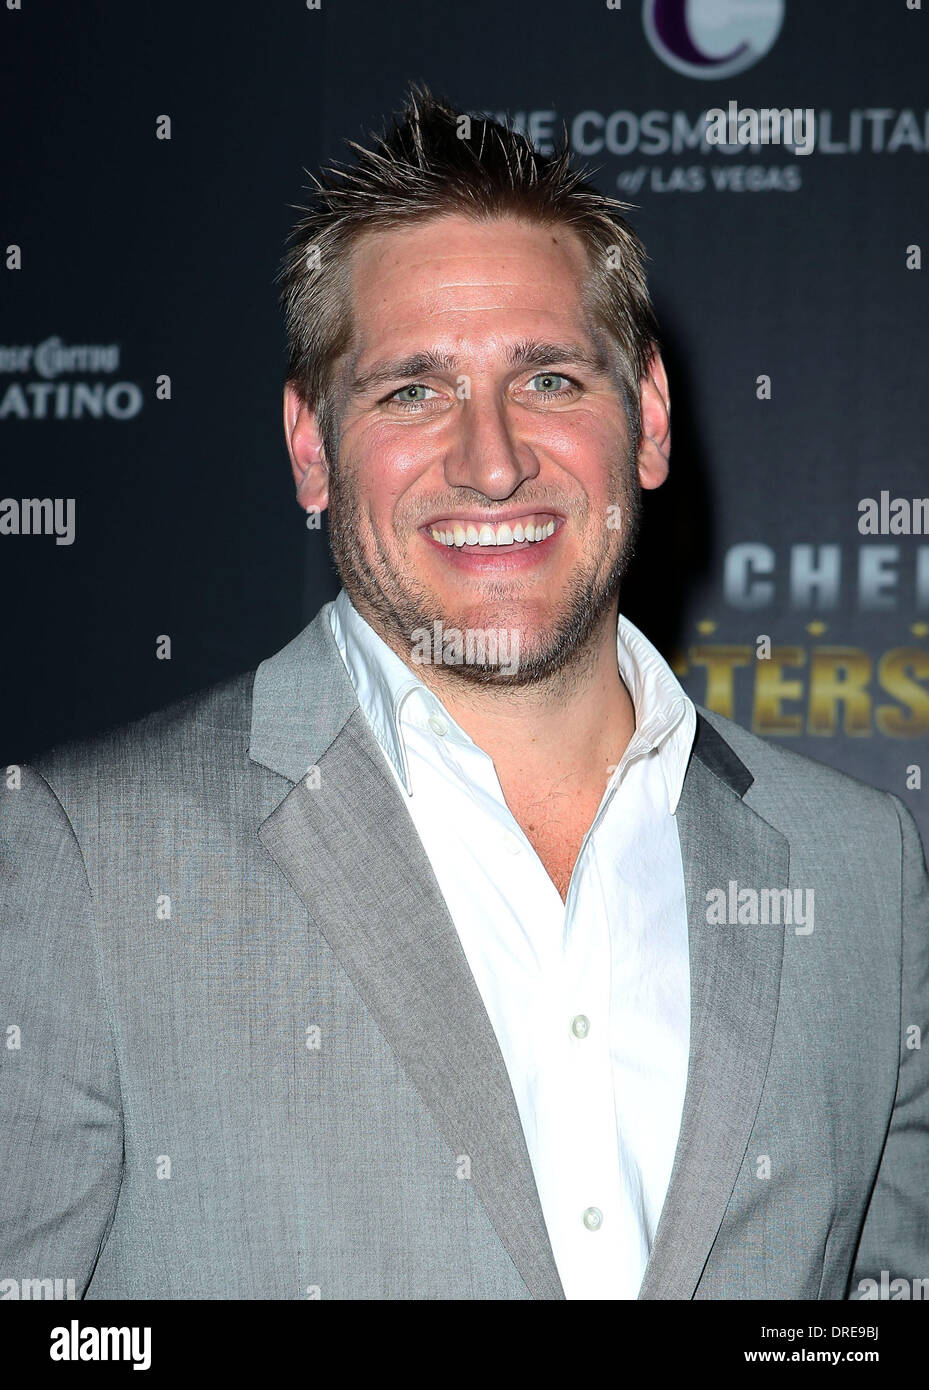 Curtis Stone 'Top Chef Masters' Season 4 Premiere Party held at The Cosmopolitan Las Vegas, Nevada - 25.07.12 - Stock Image